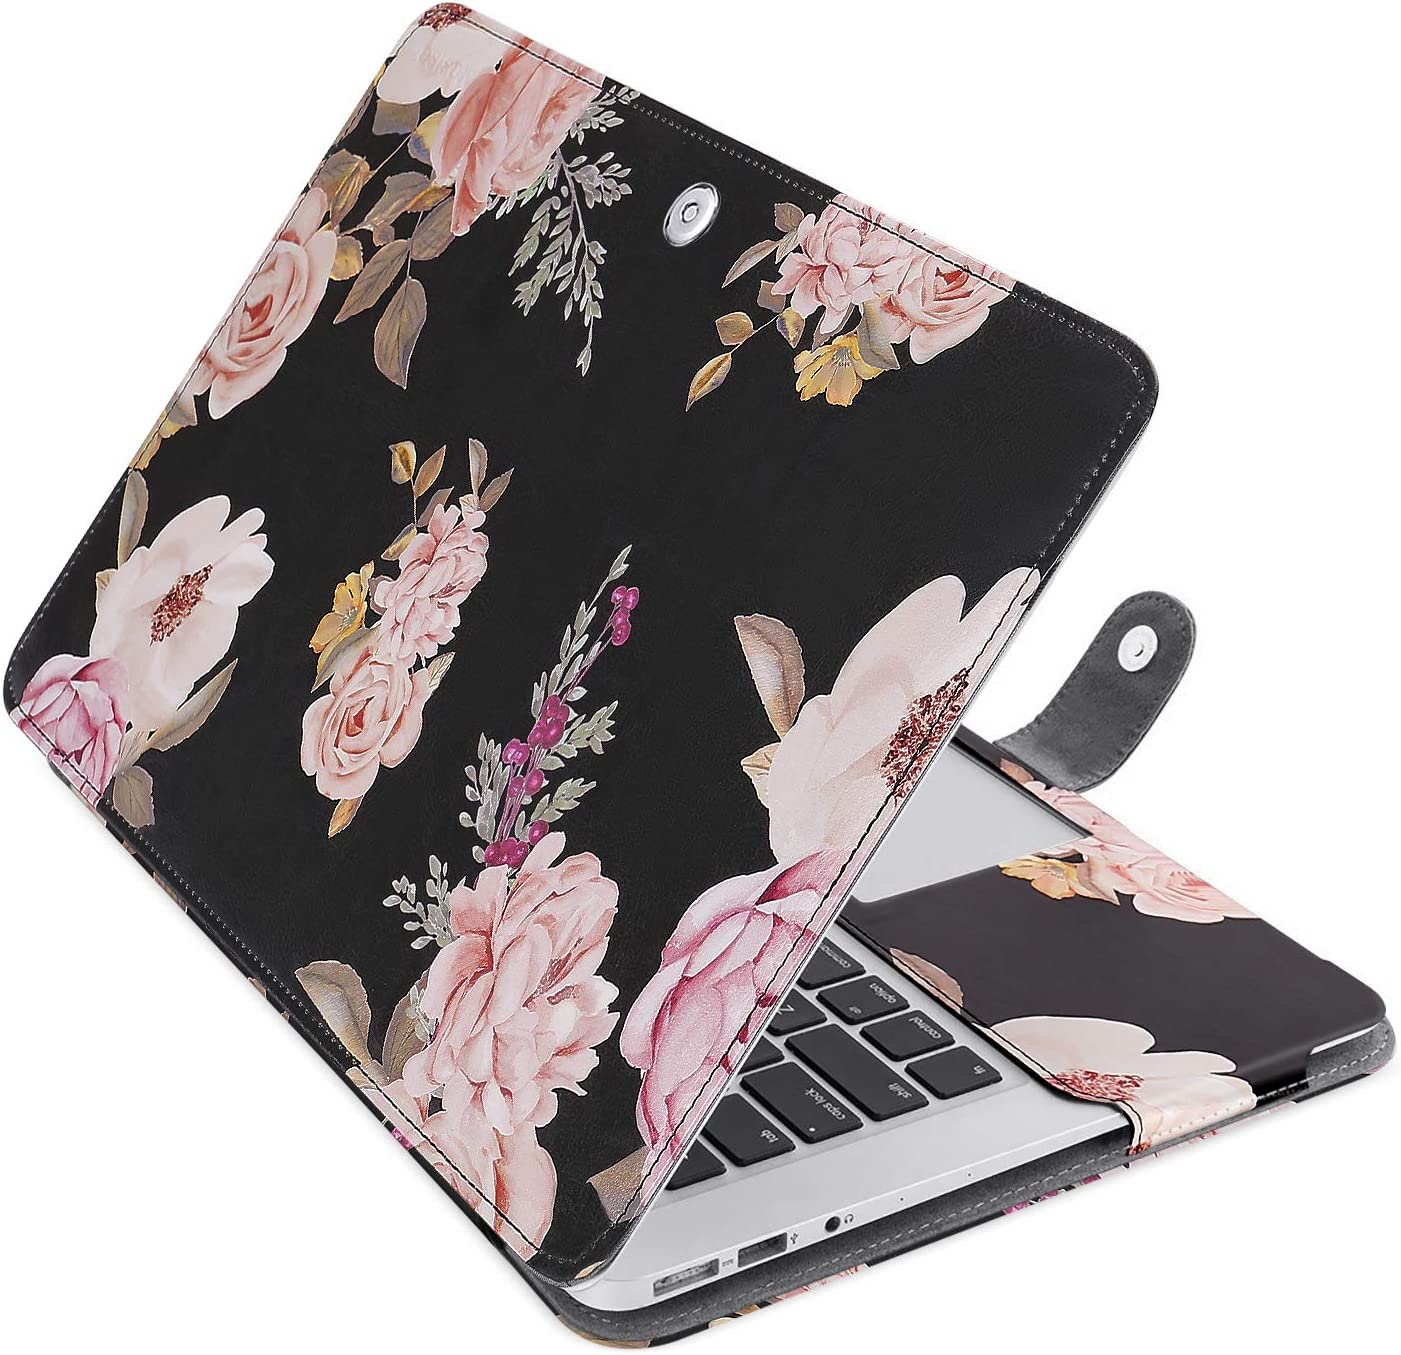 MOSISO MacBook Air 13 inch Case, Pattern PU Leather Book Folio Protective Stand Cover Sleeve Compatible with MacBook Air 13 inch A1466 / A1369 (Older Version Release 2010-2017), Black Base Peony